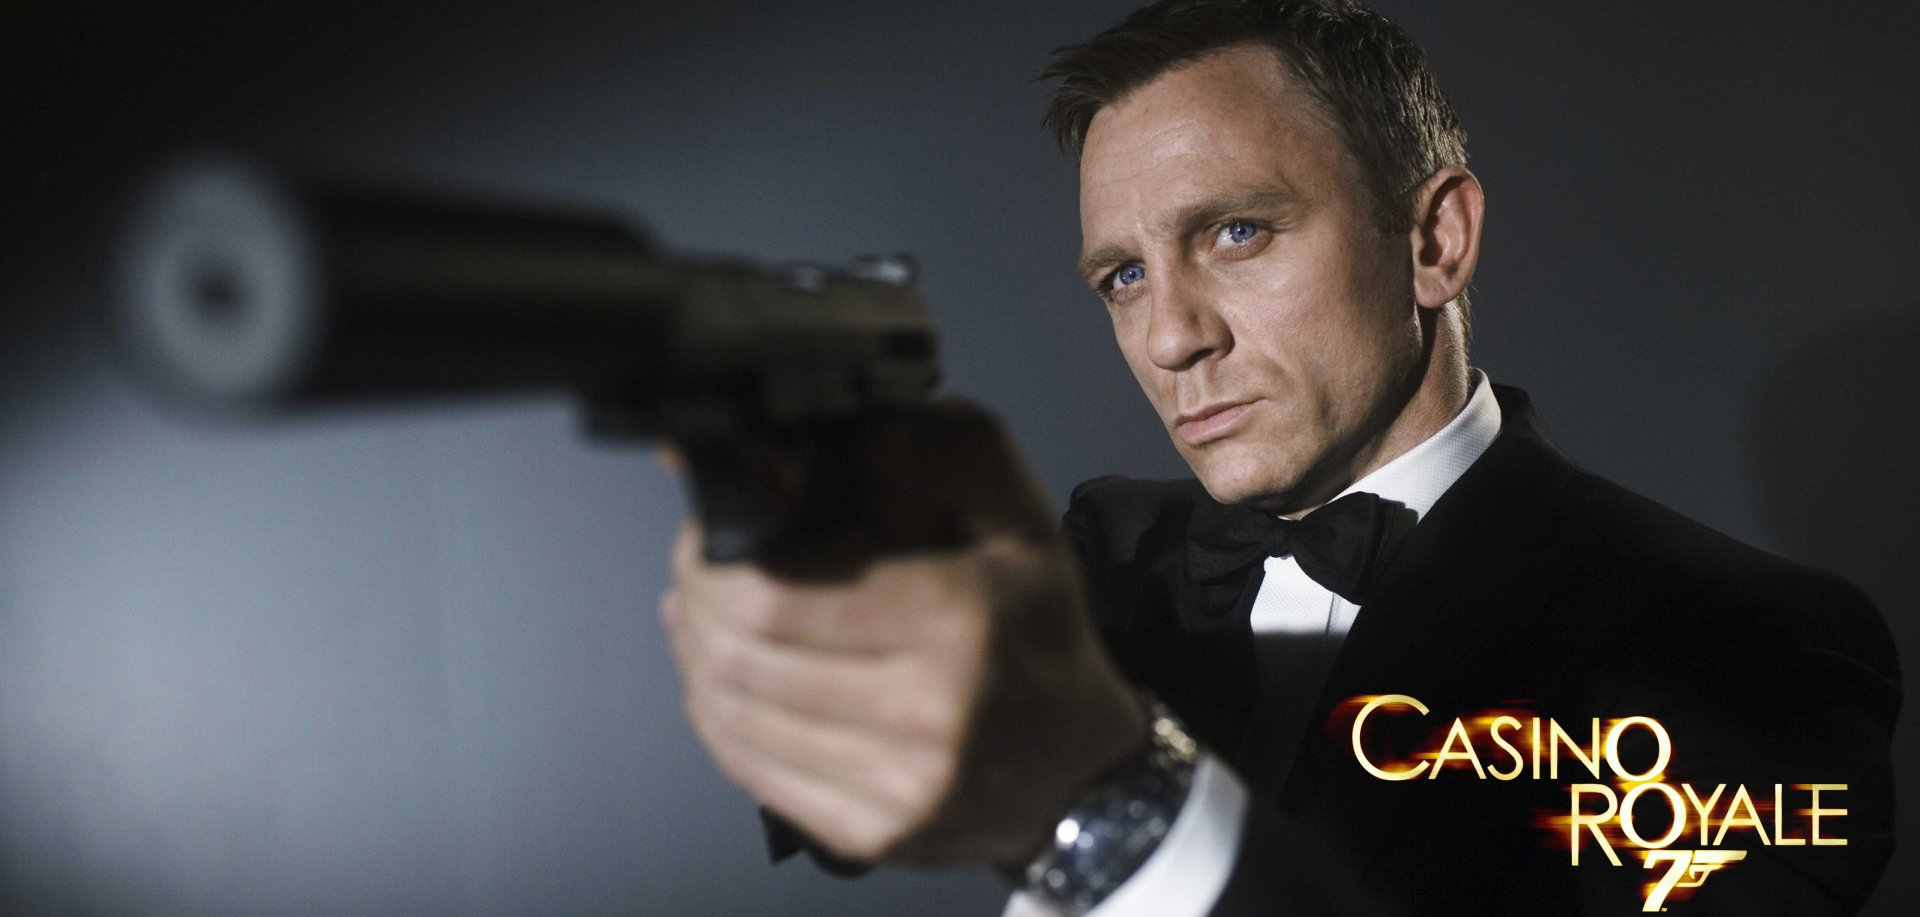 Take 2: Casino Royale feature image